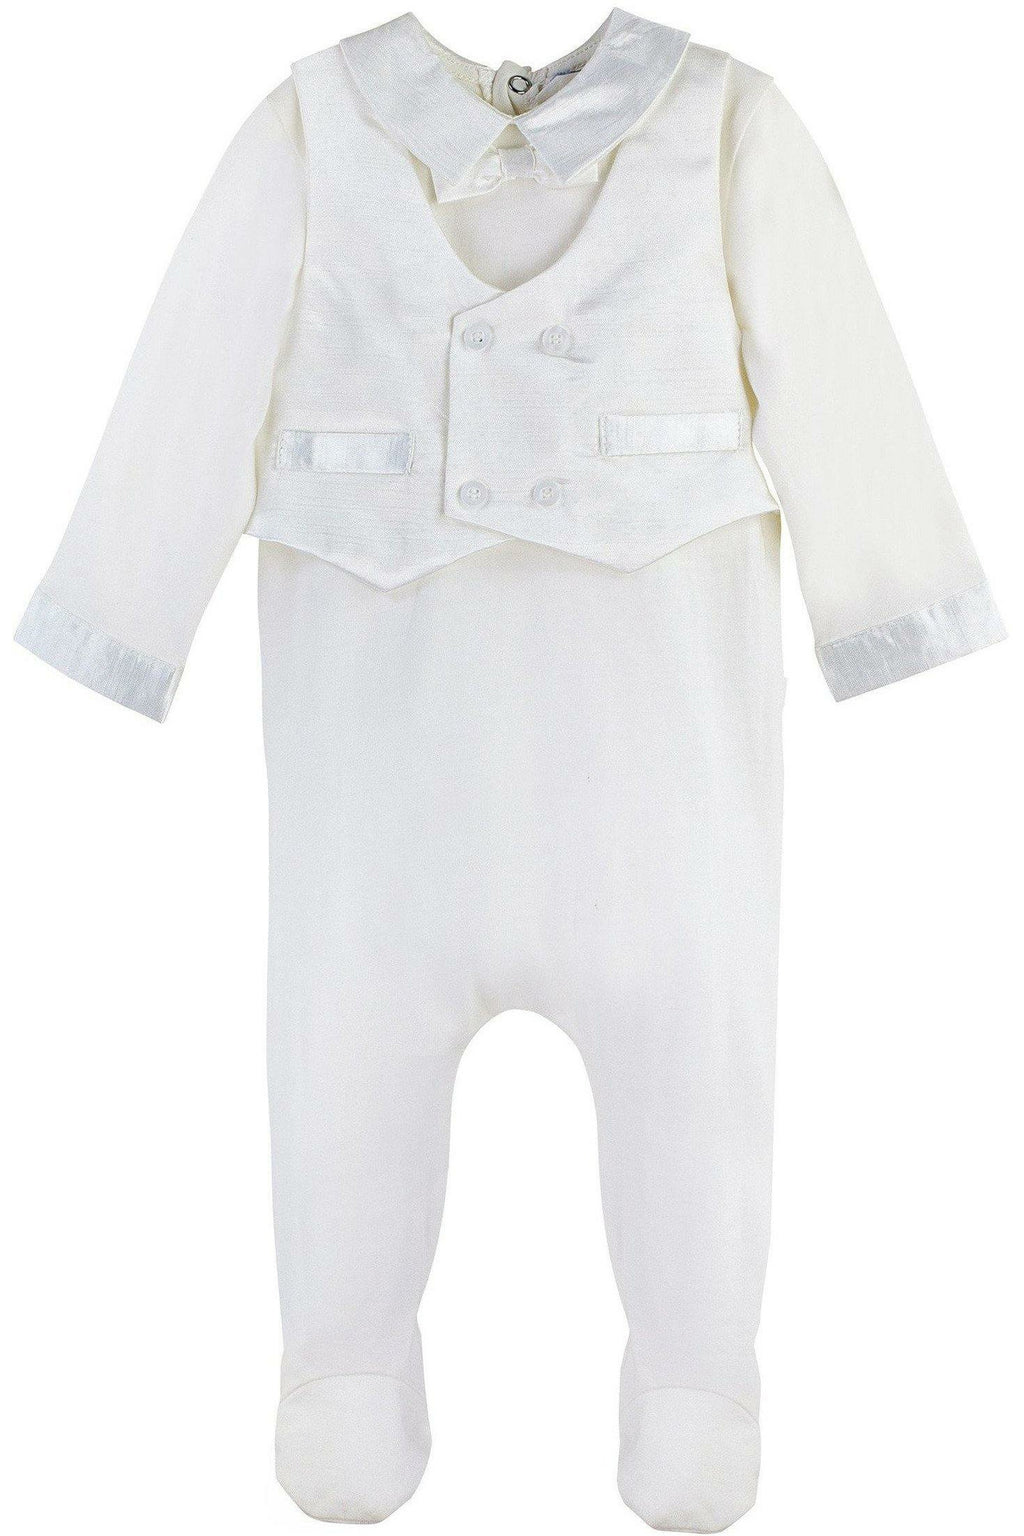 Baby Boy Formal Silk Vest Footsie + Hat